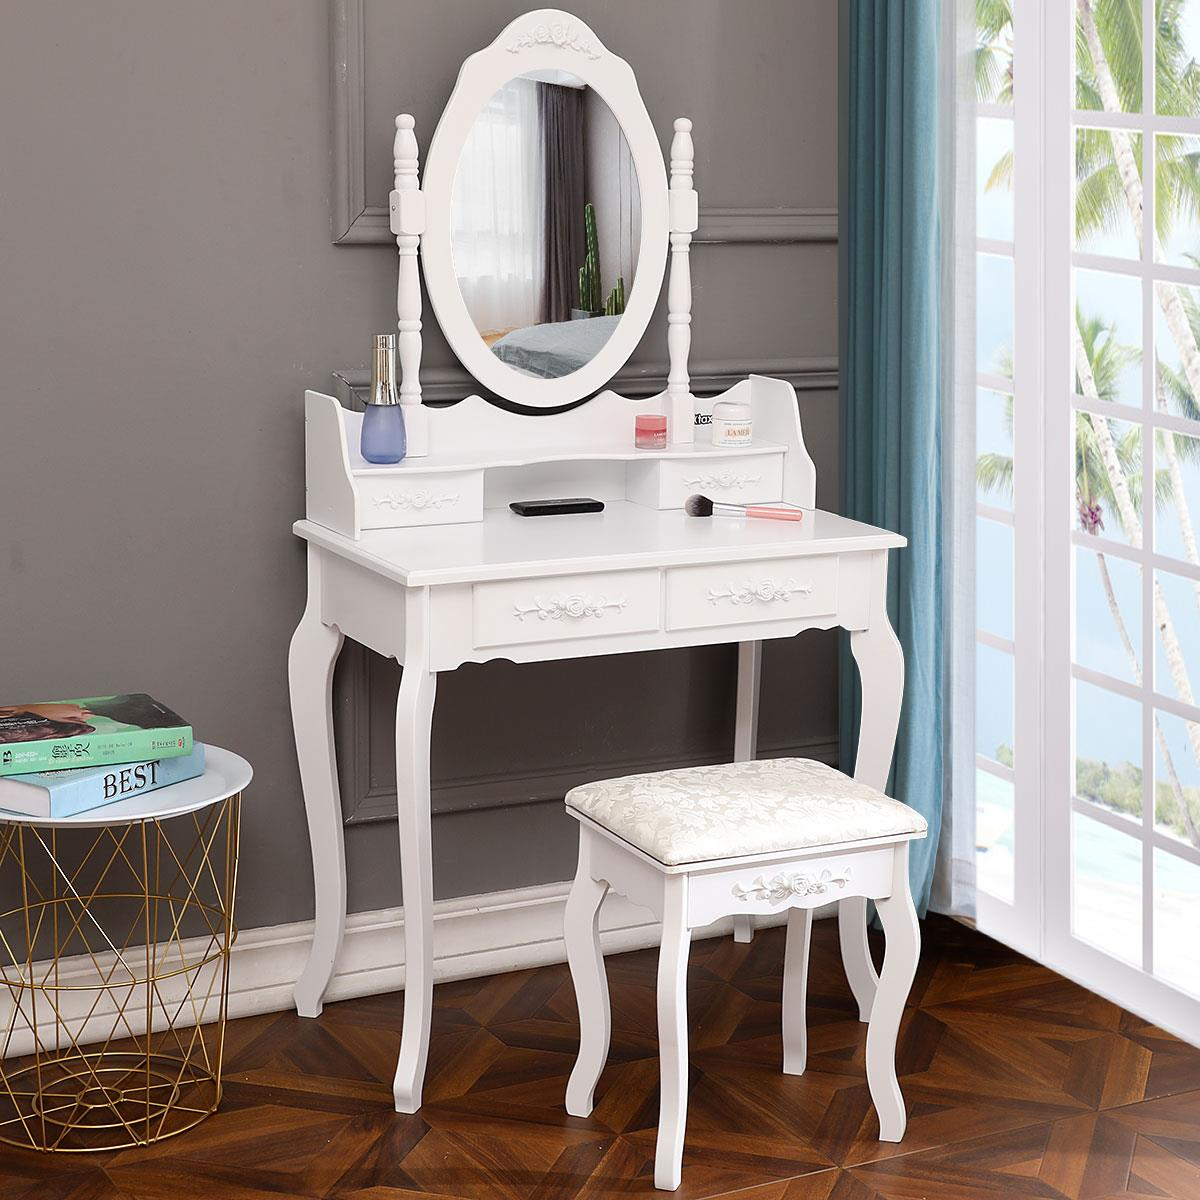 Ktaxon Elegance White Dressing Table Vanity Table And Stool Set Wood Makeup Desk With 4 Drawers Mirror Walmart Com Walmart Com